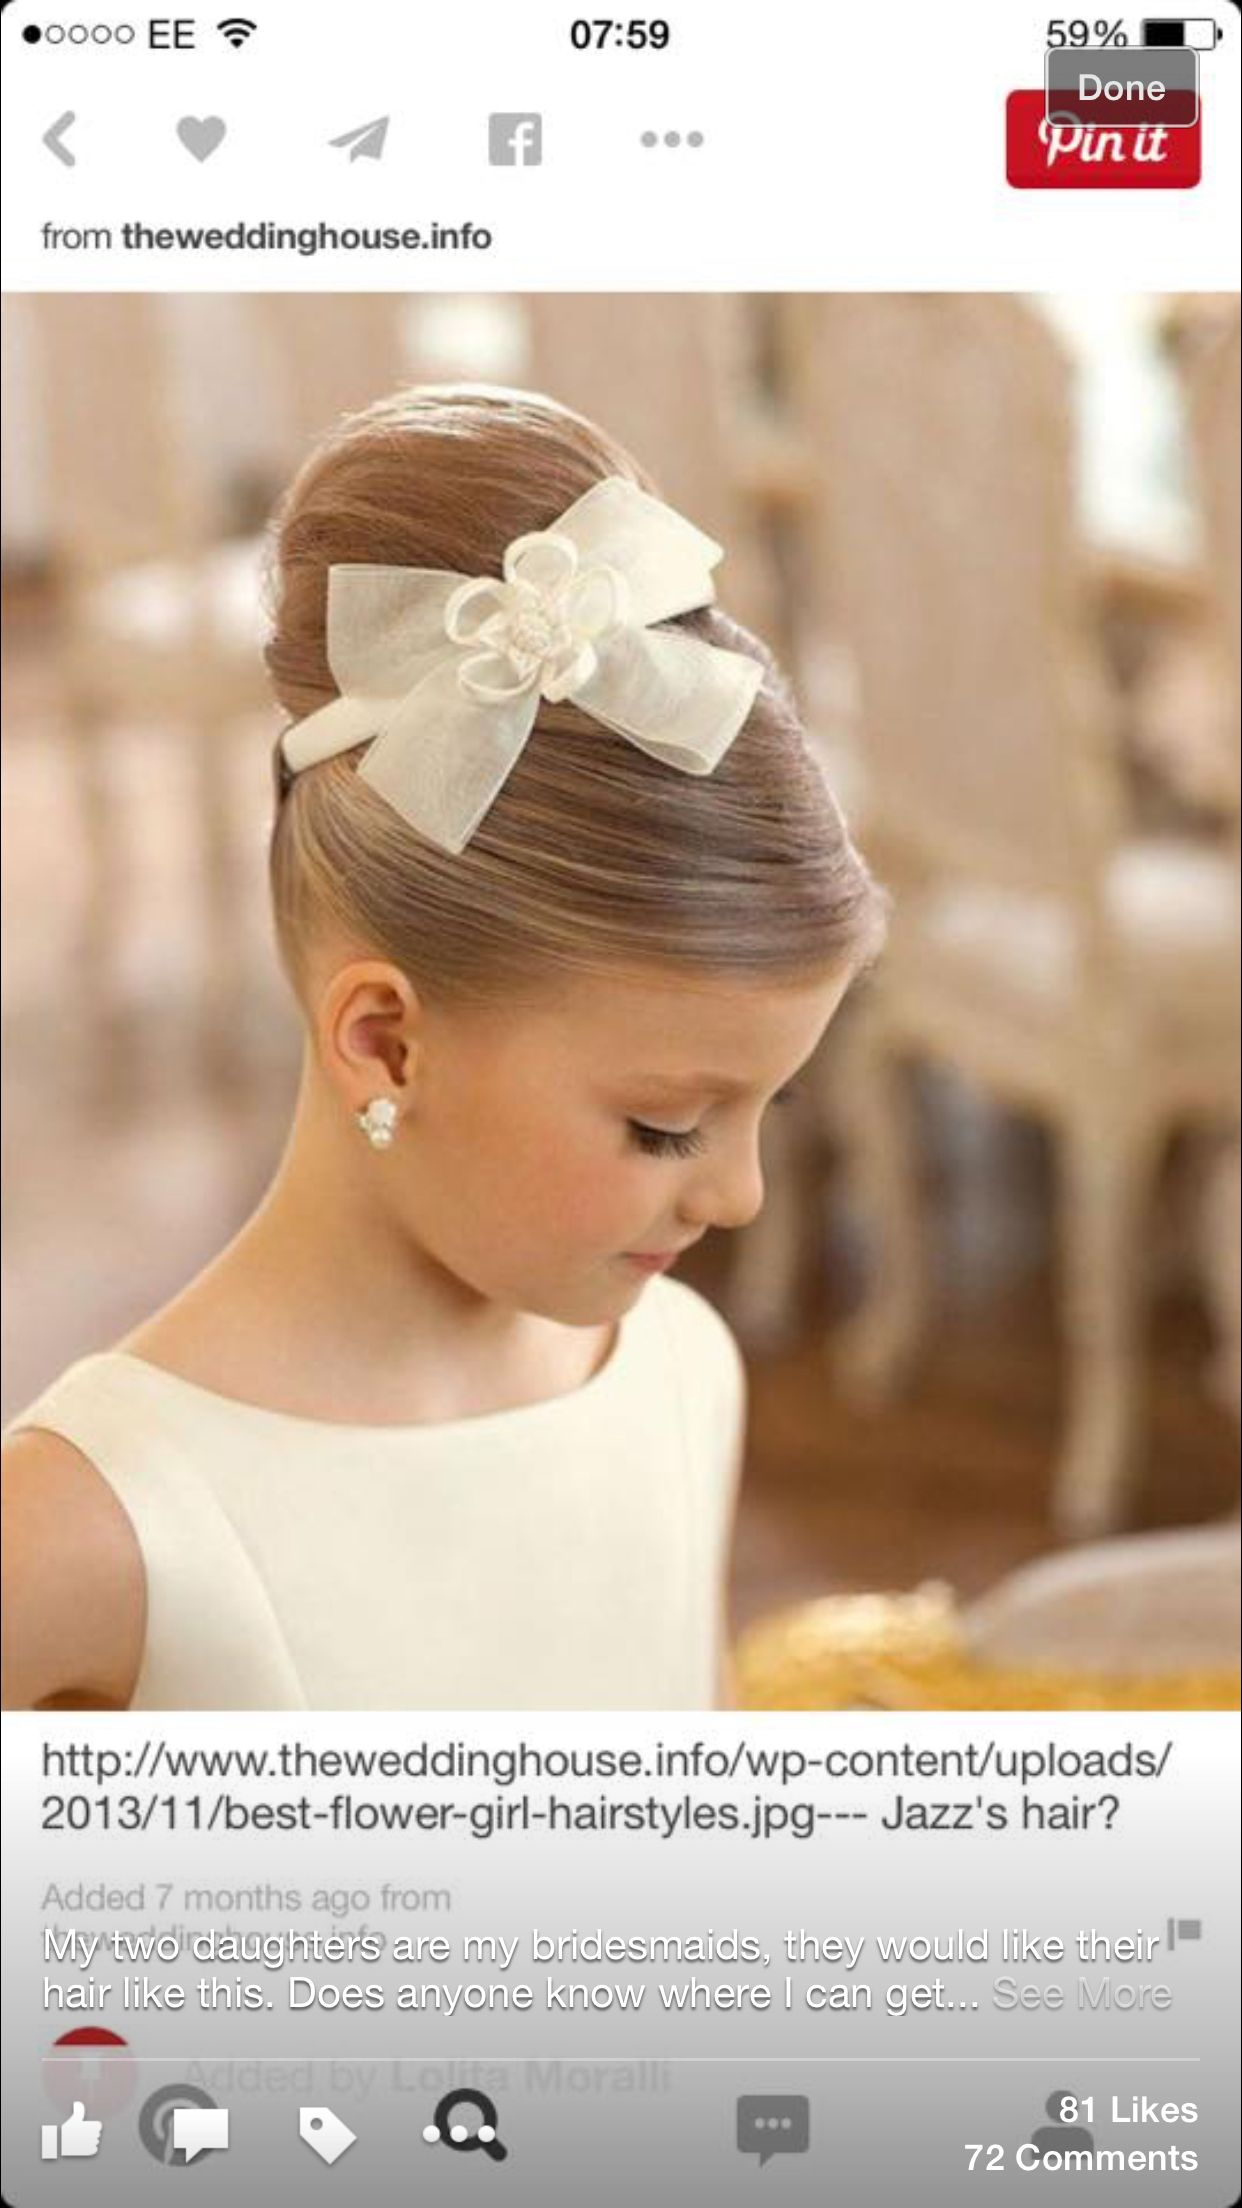 Cjs hair hochzeitsfrisuren pinterest hair style weddings and